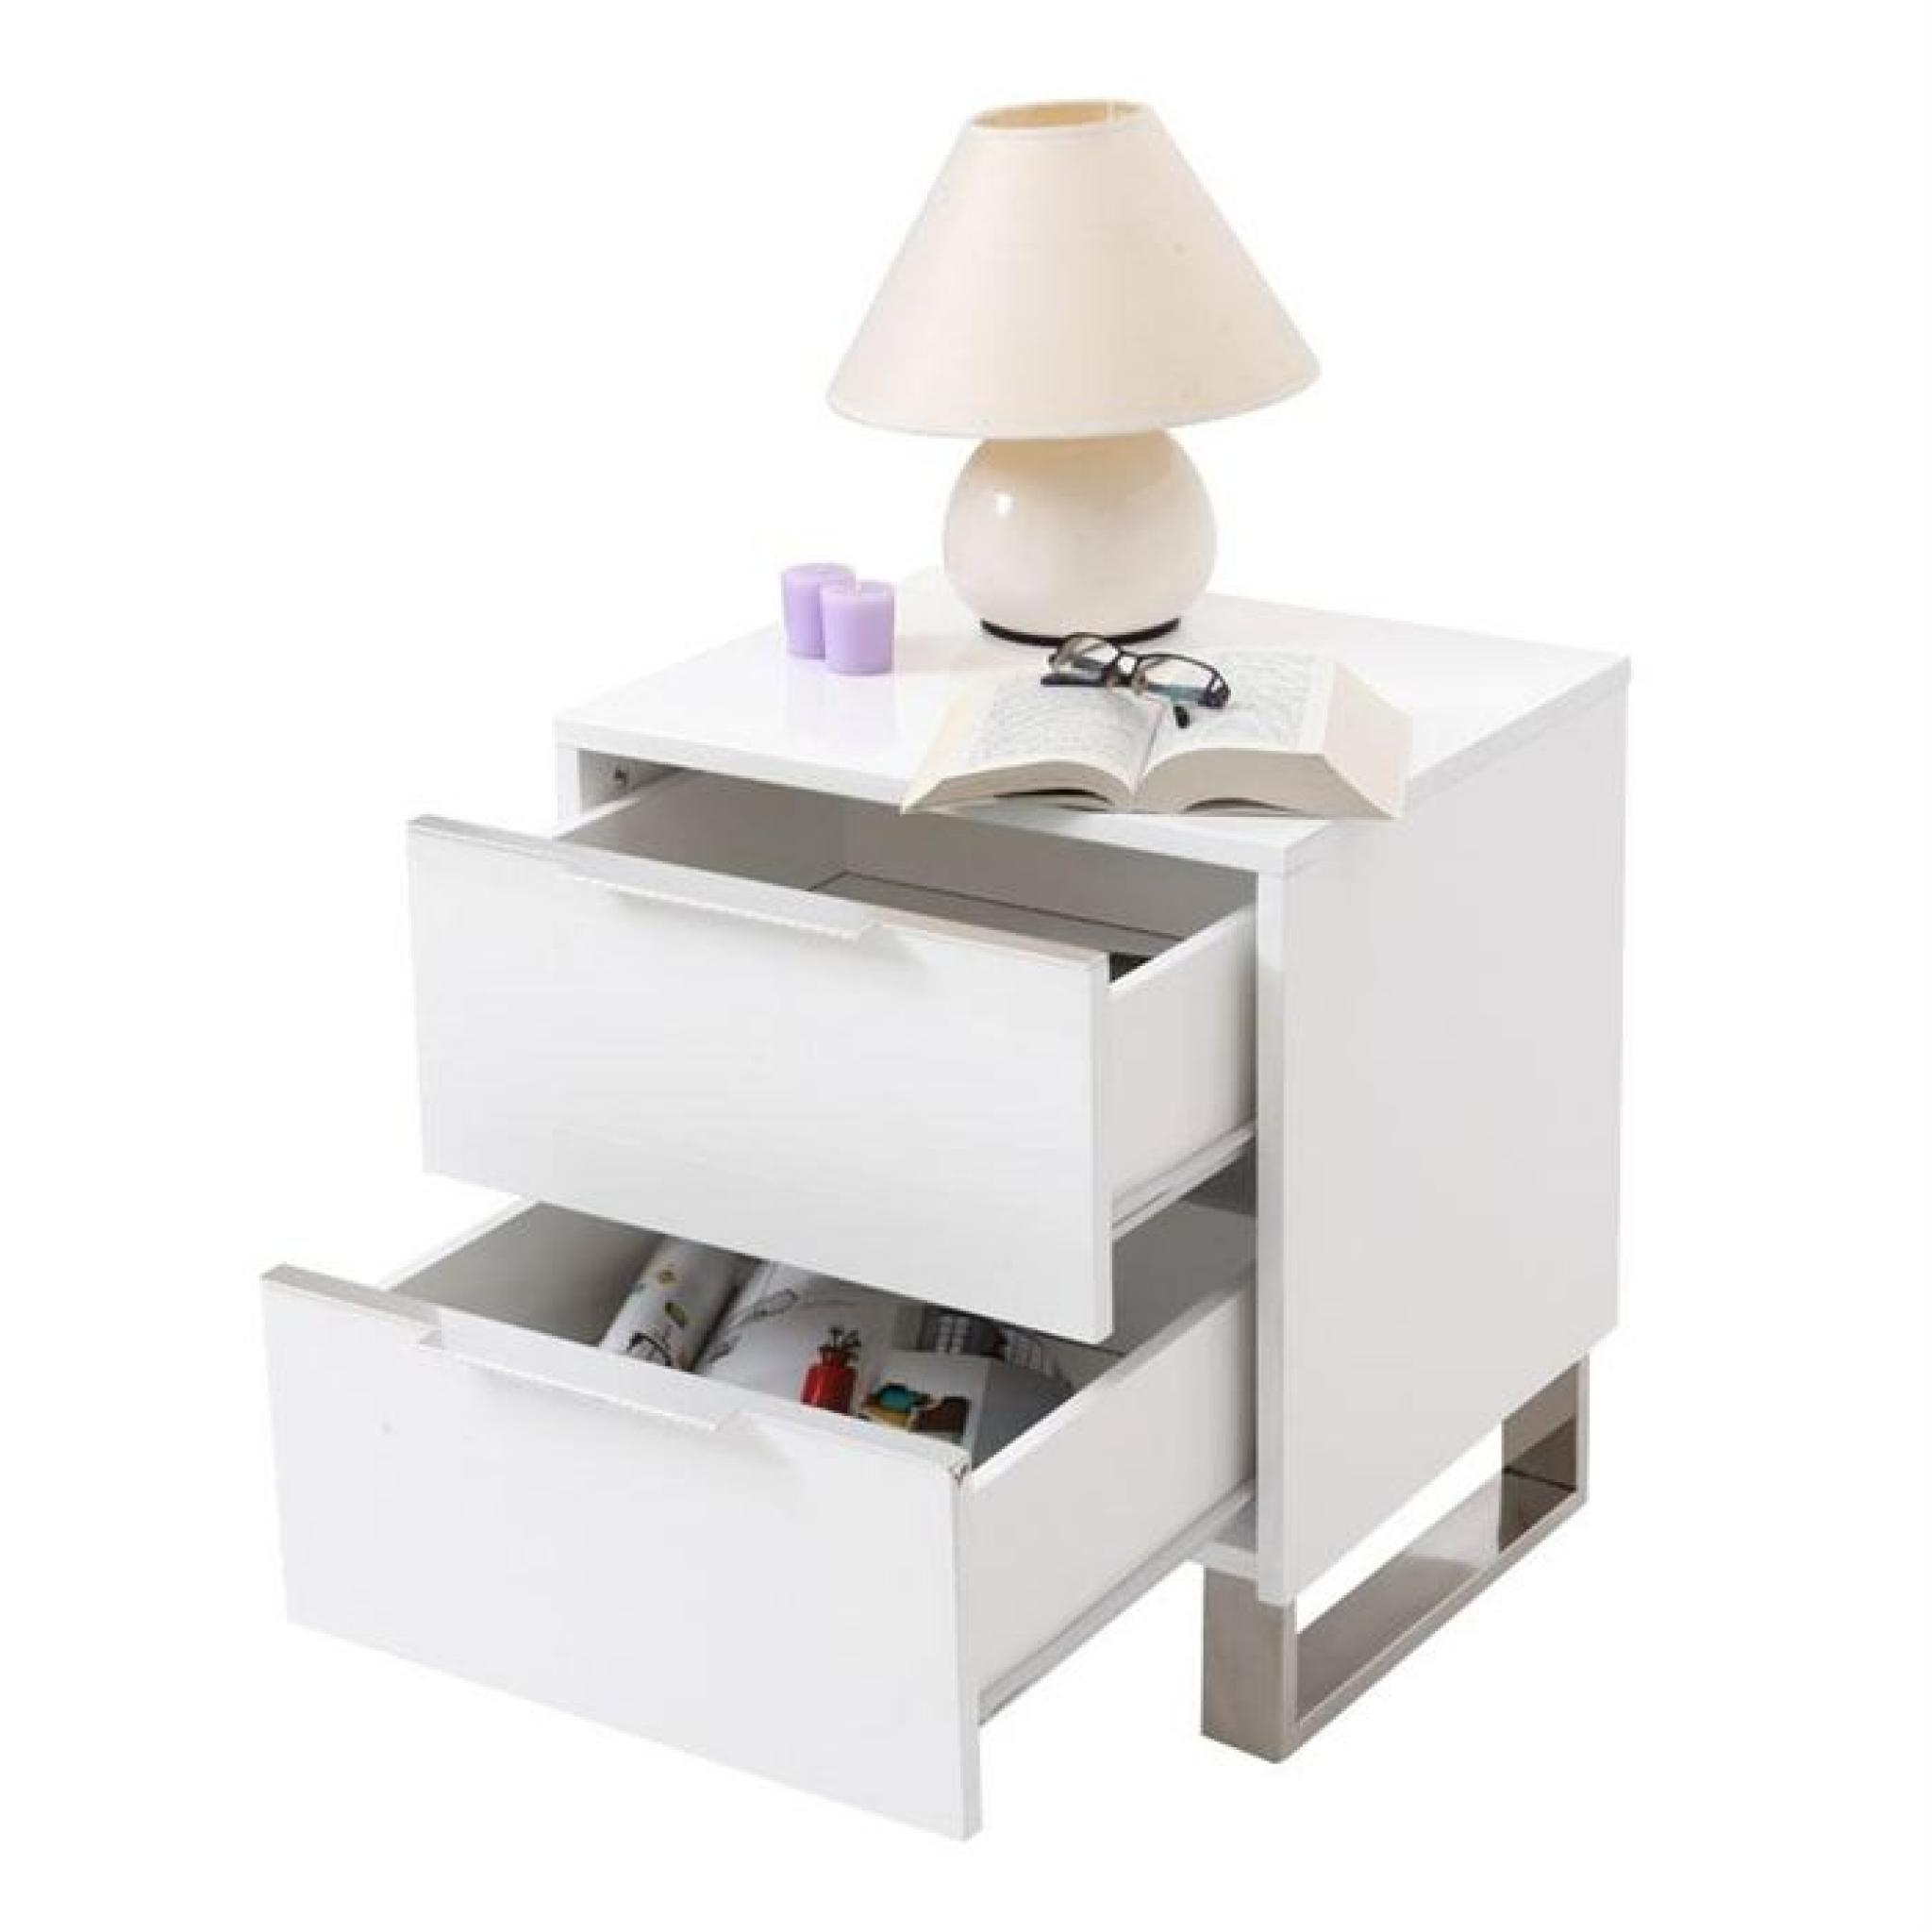 Table de nuit design laqu e blanche halifax achat vente for Table laquee blanche